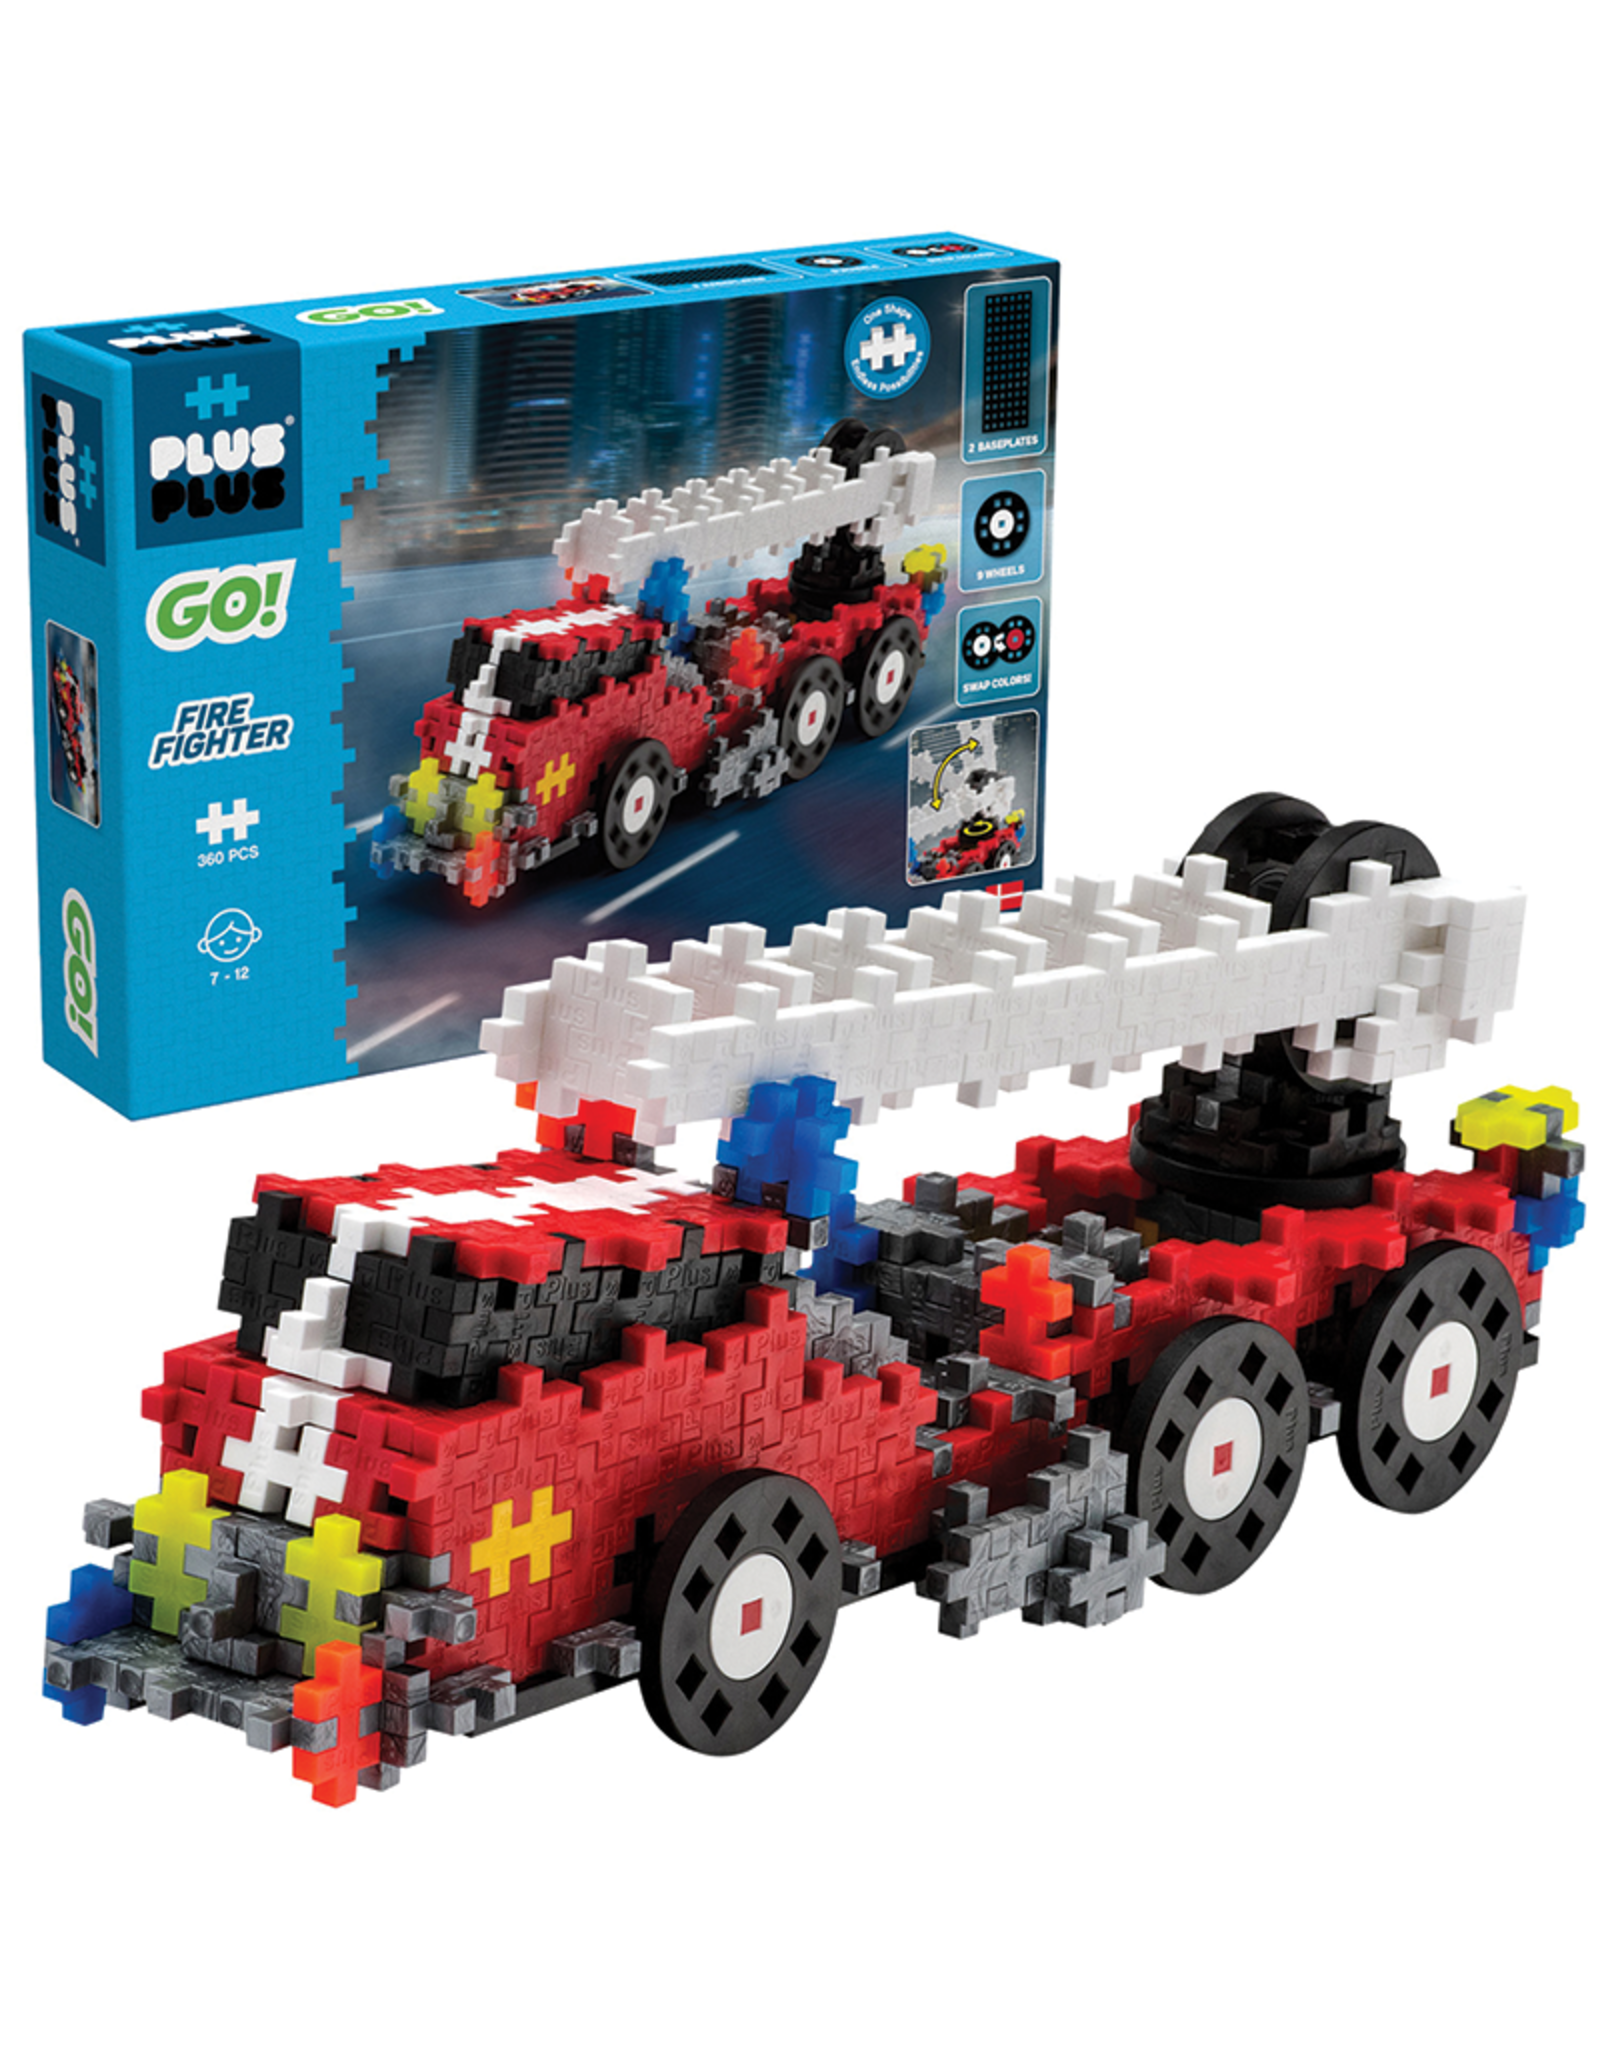 Plus-Plus Go! Fire Fighter Engine, 360 pc Set